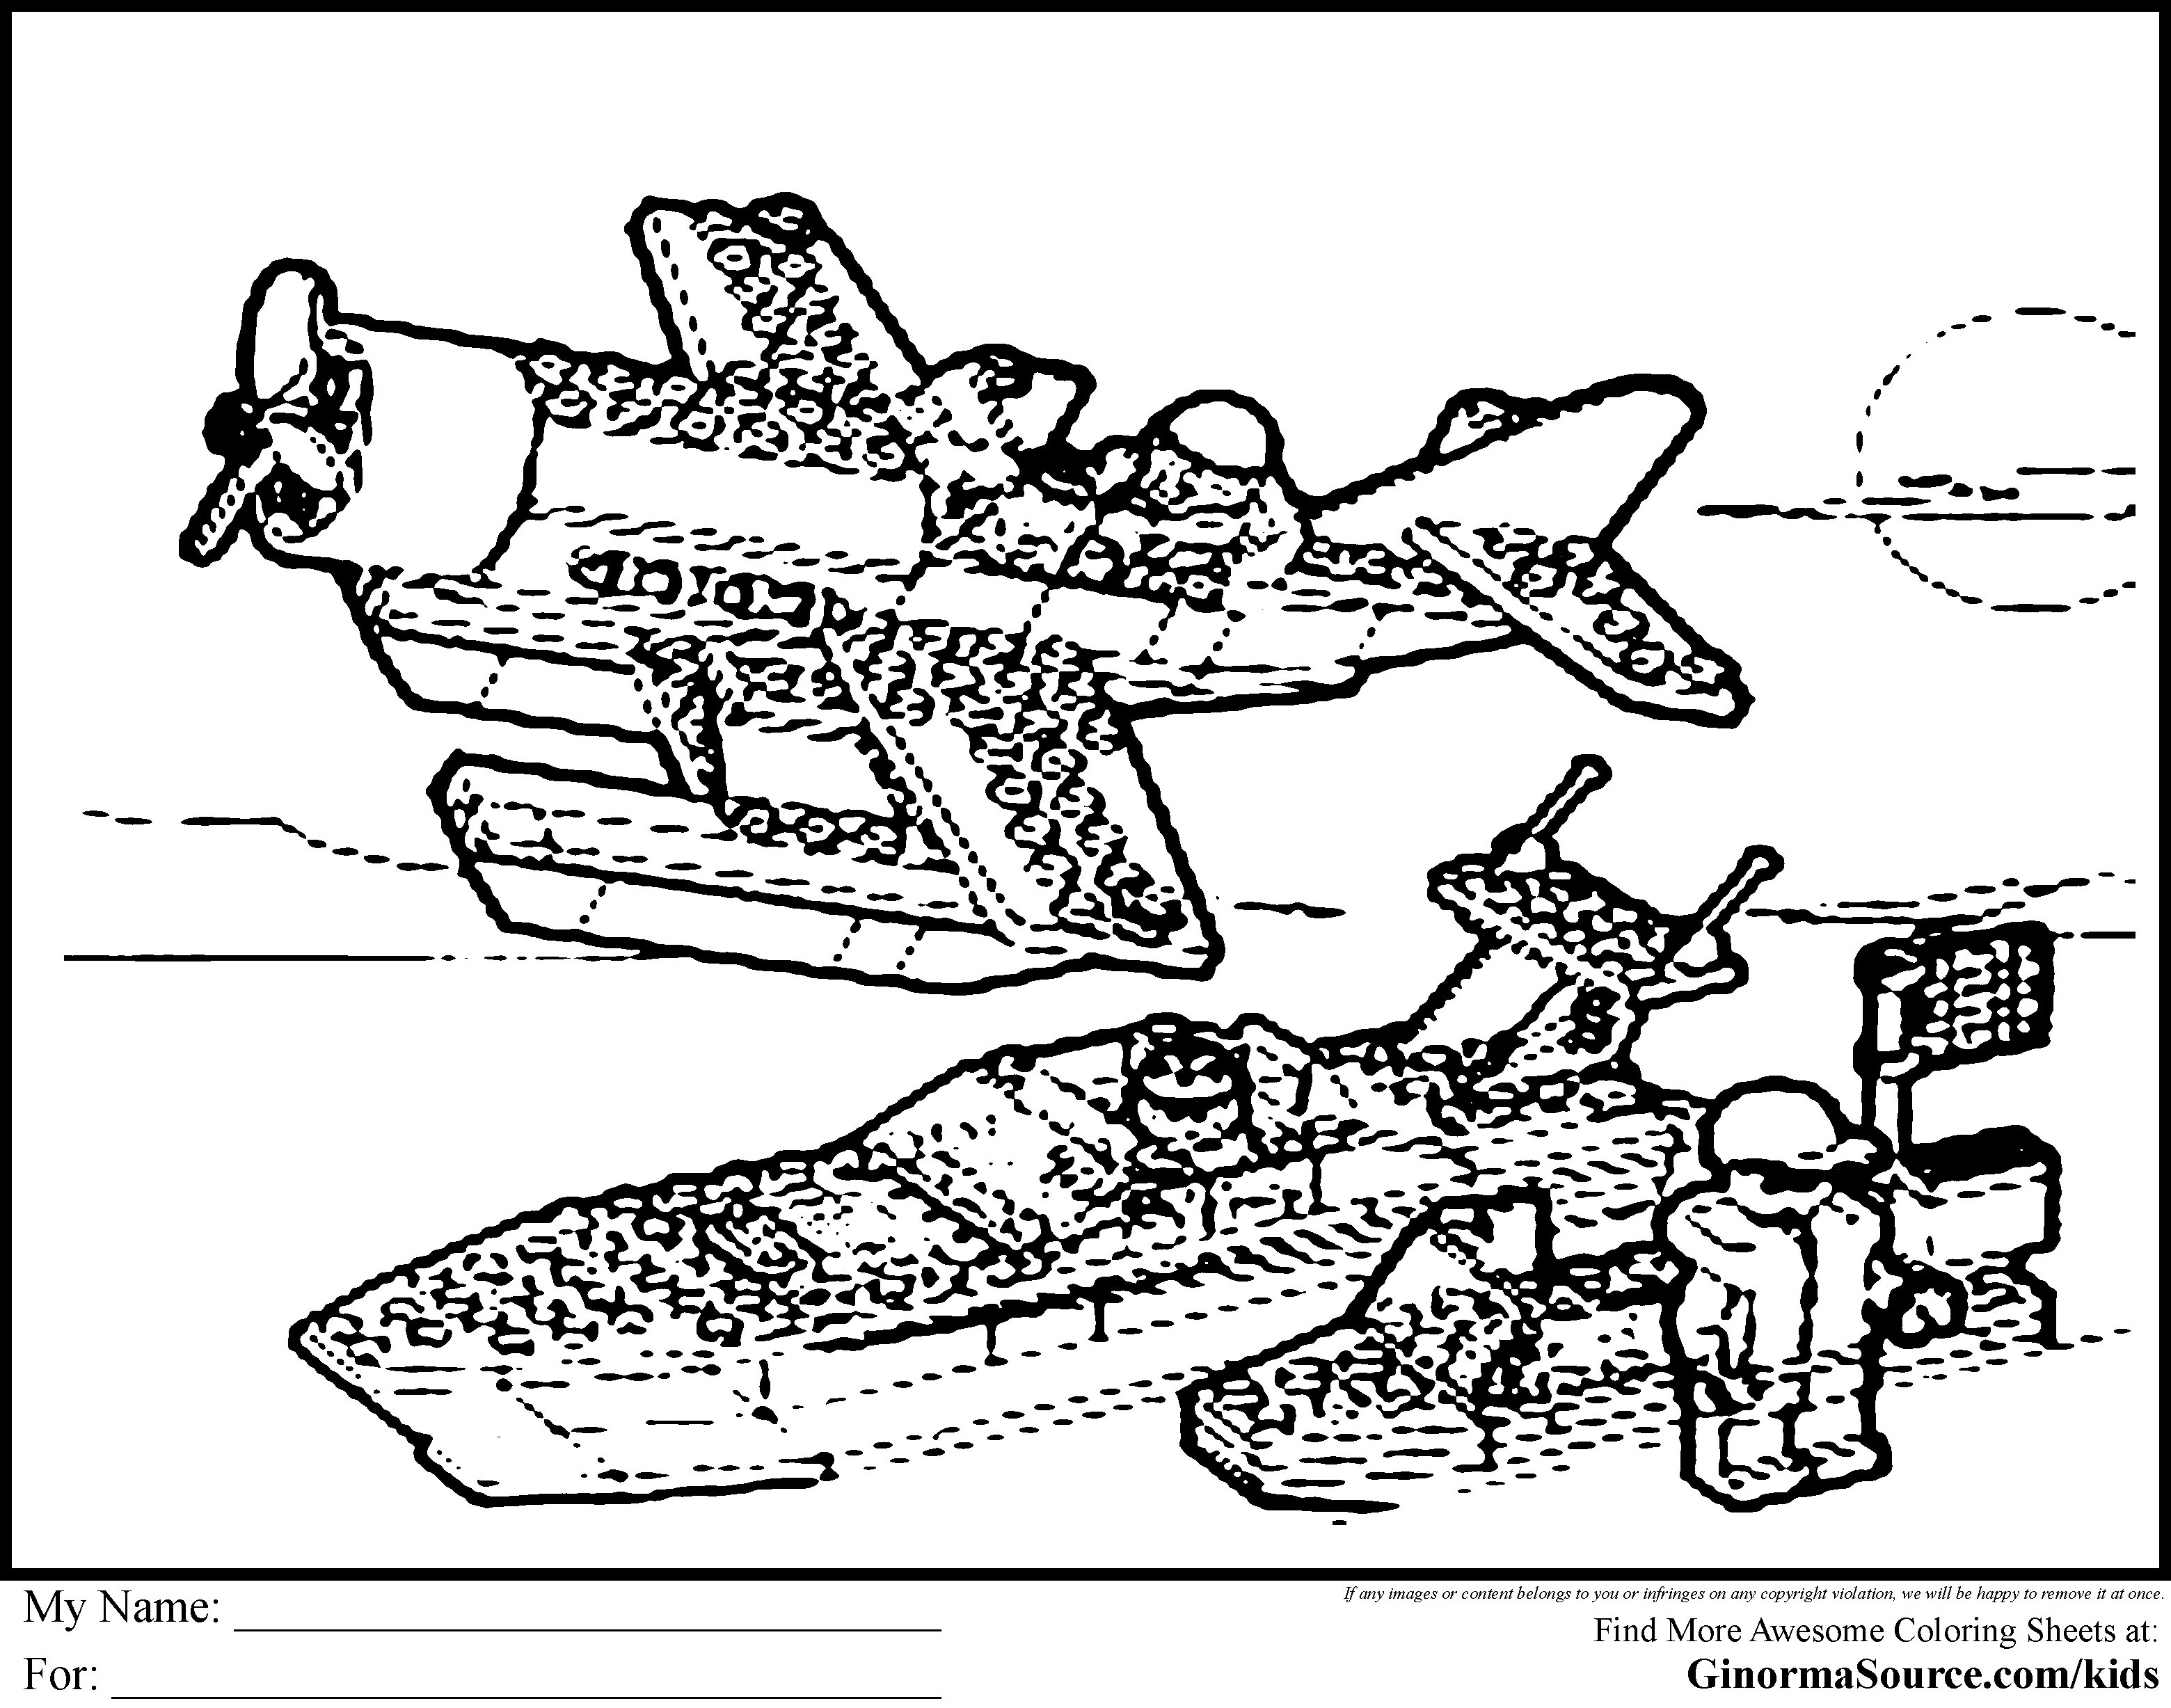 Lego City Coloring Pages To Download And Print For Free - Coloring Home